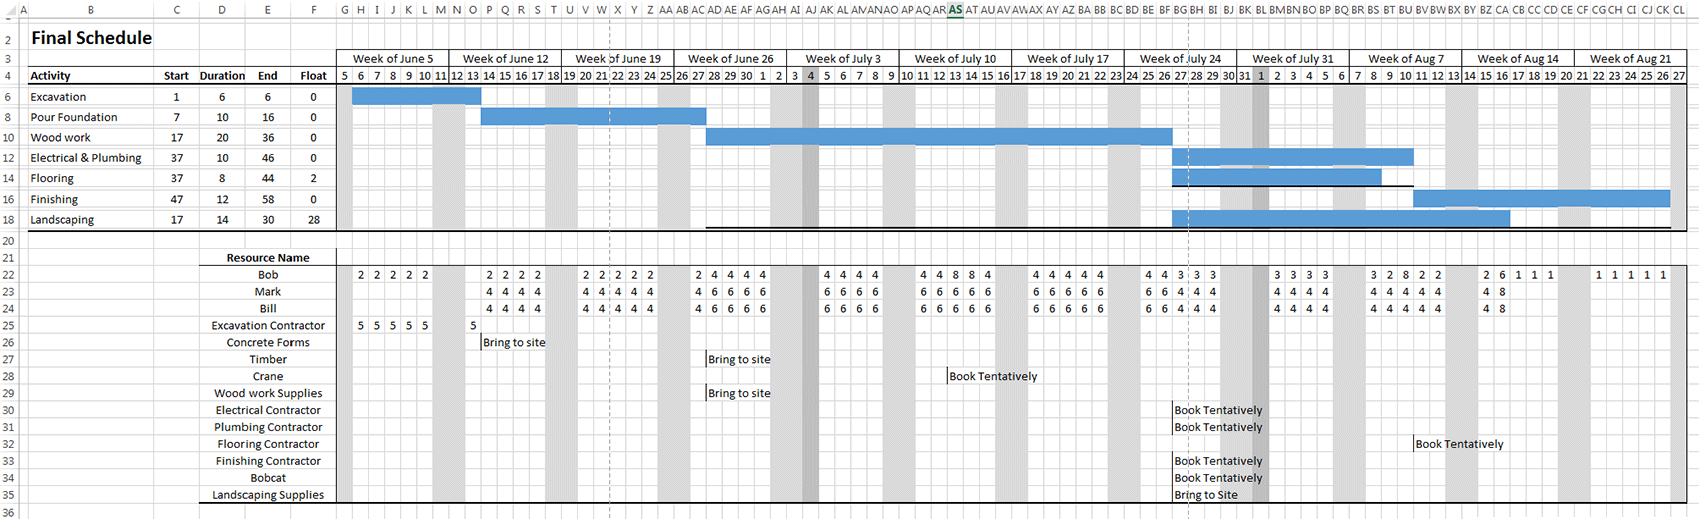 Professional project scheduling log house example project final gantt chart nvjuhfo Choice Image